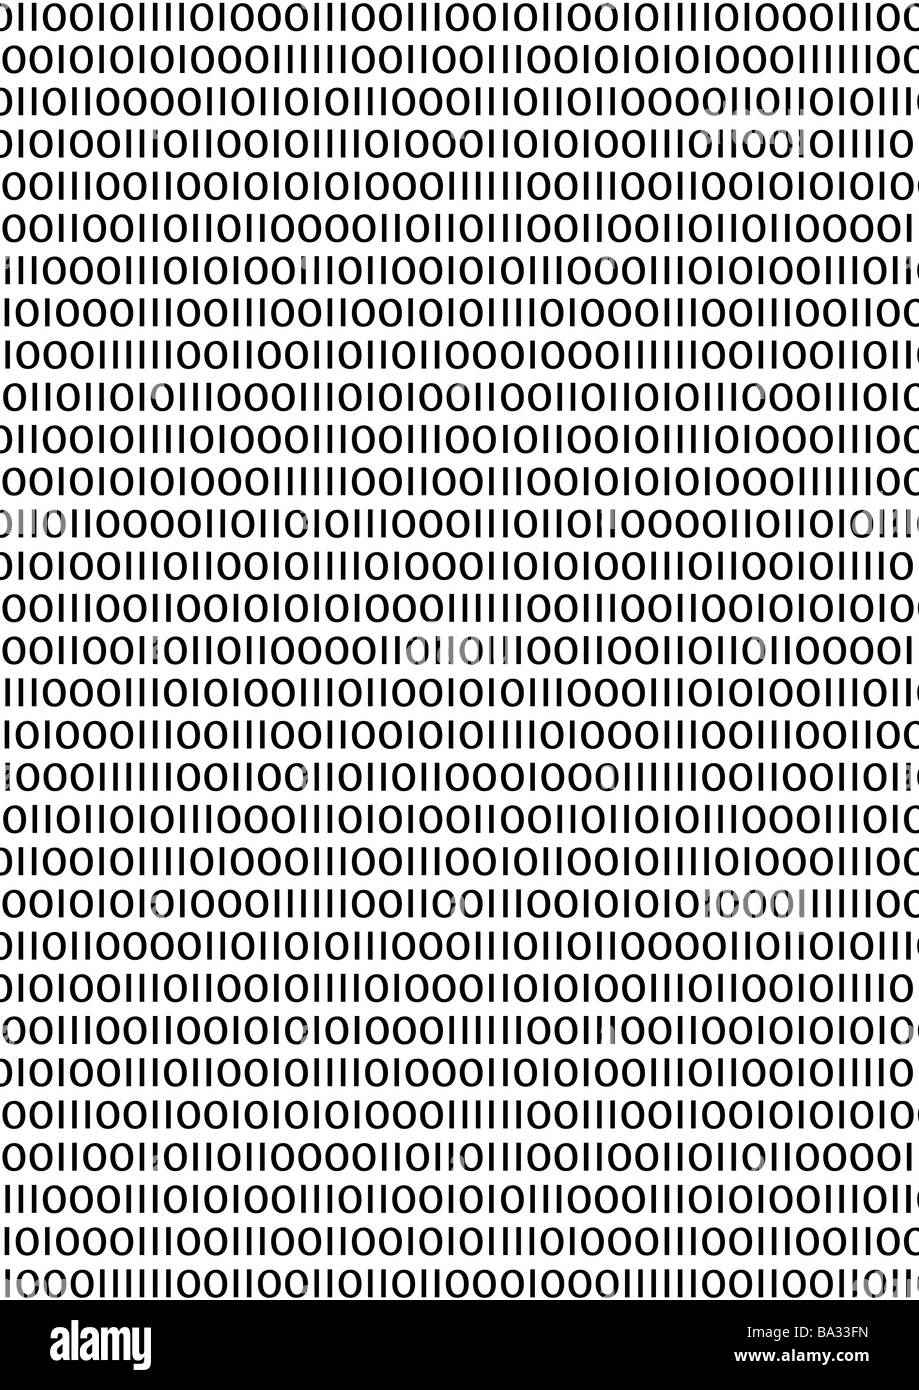 Binary pay code numbers data binary symbol computer language stock binary pay code numbers data binary symbol computer language binary code binary numbers electronics research computer science buycottarizona